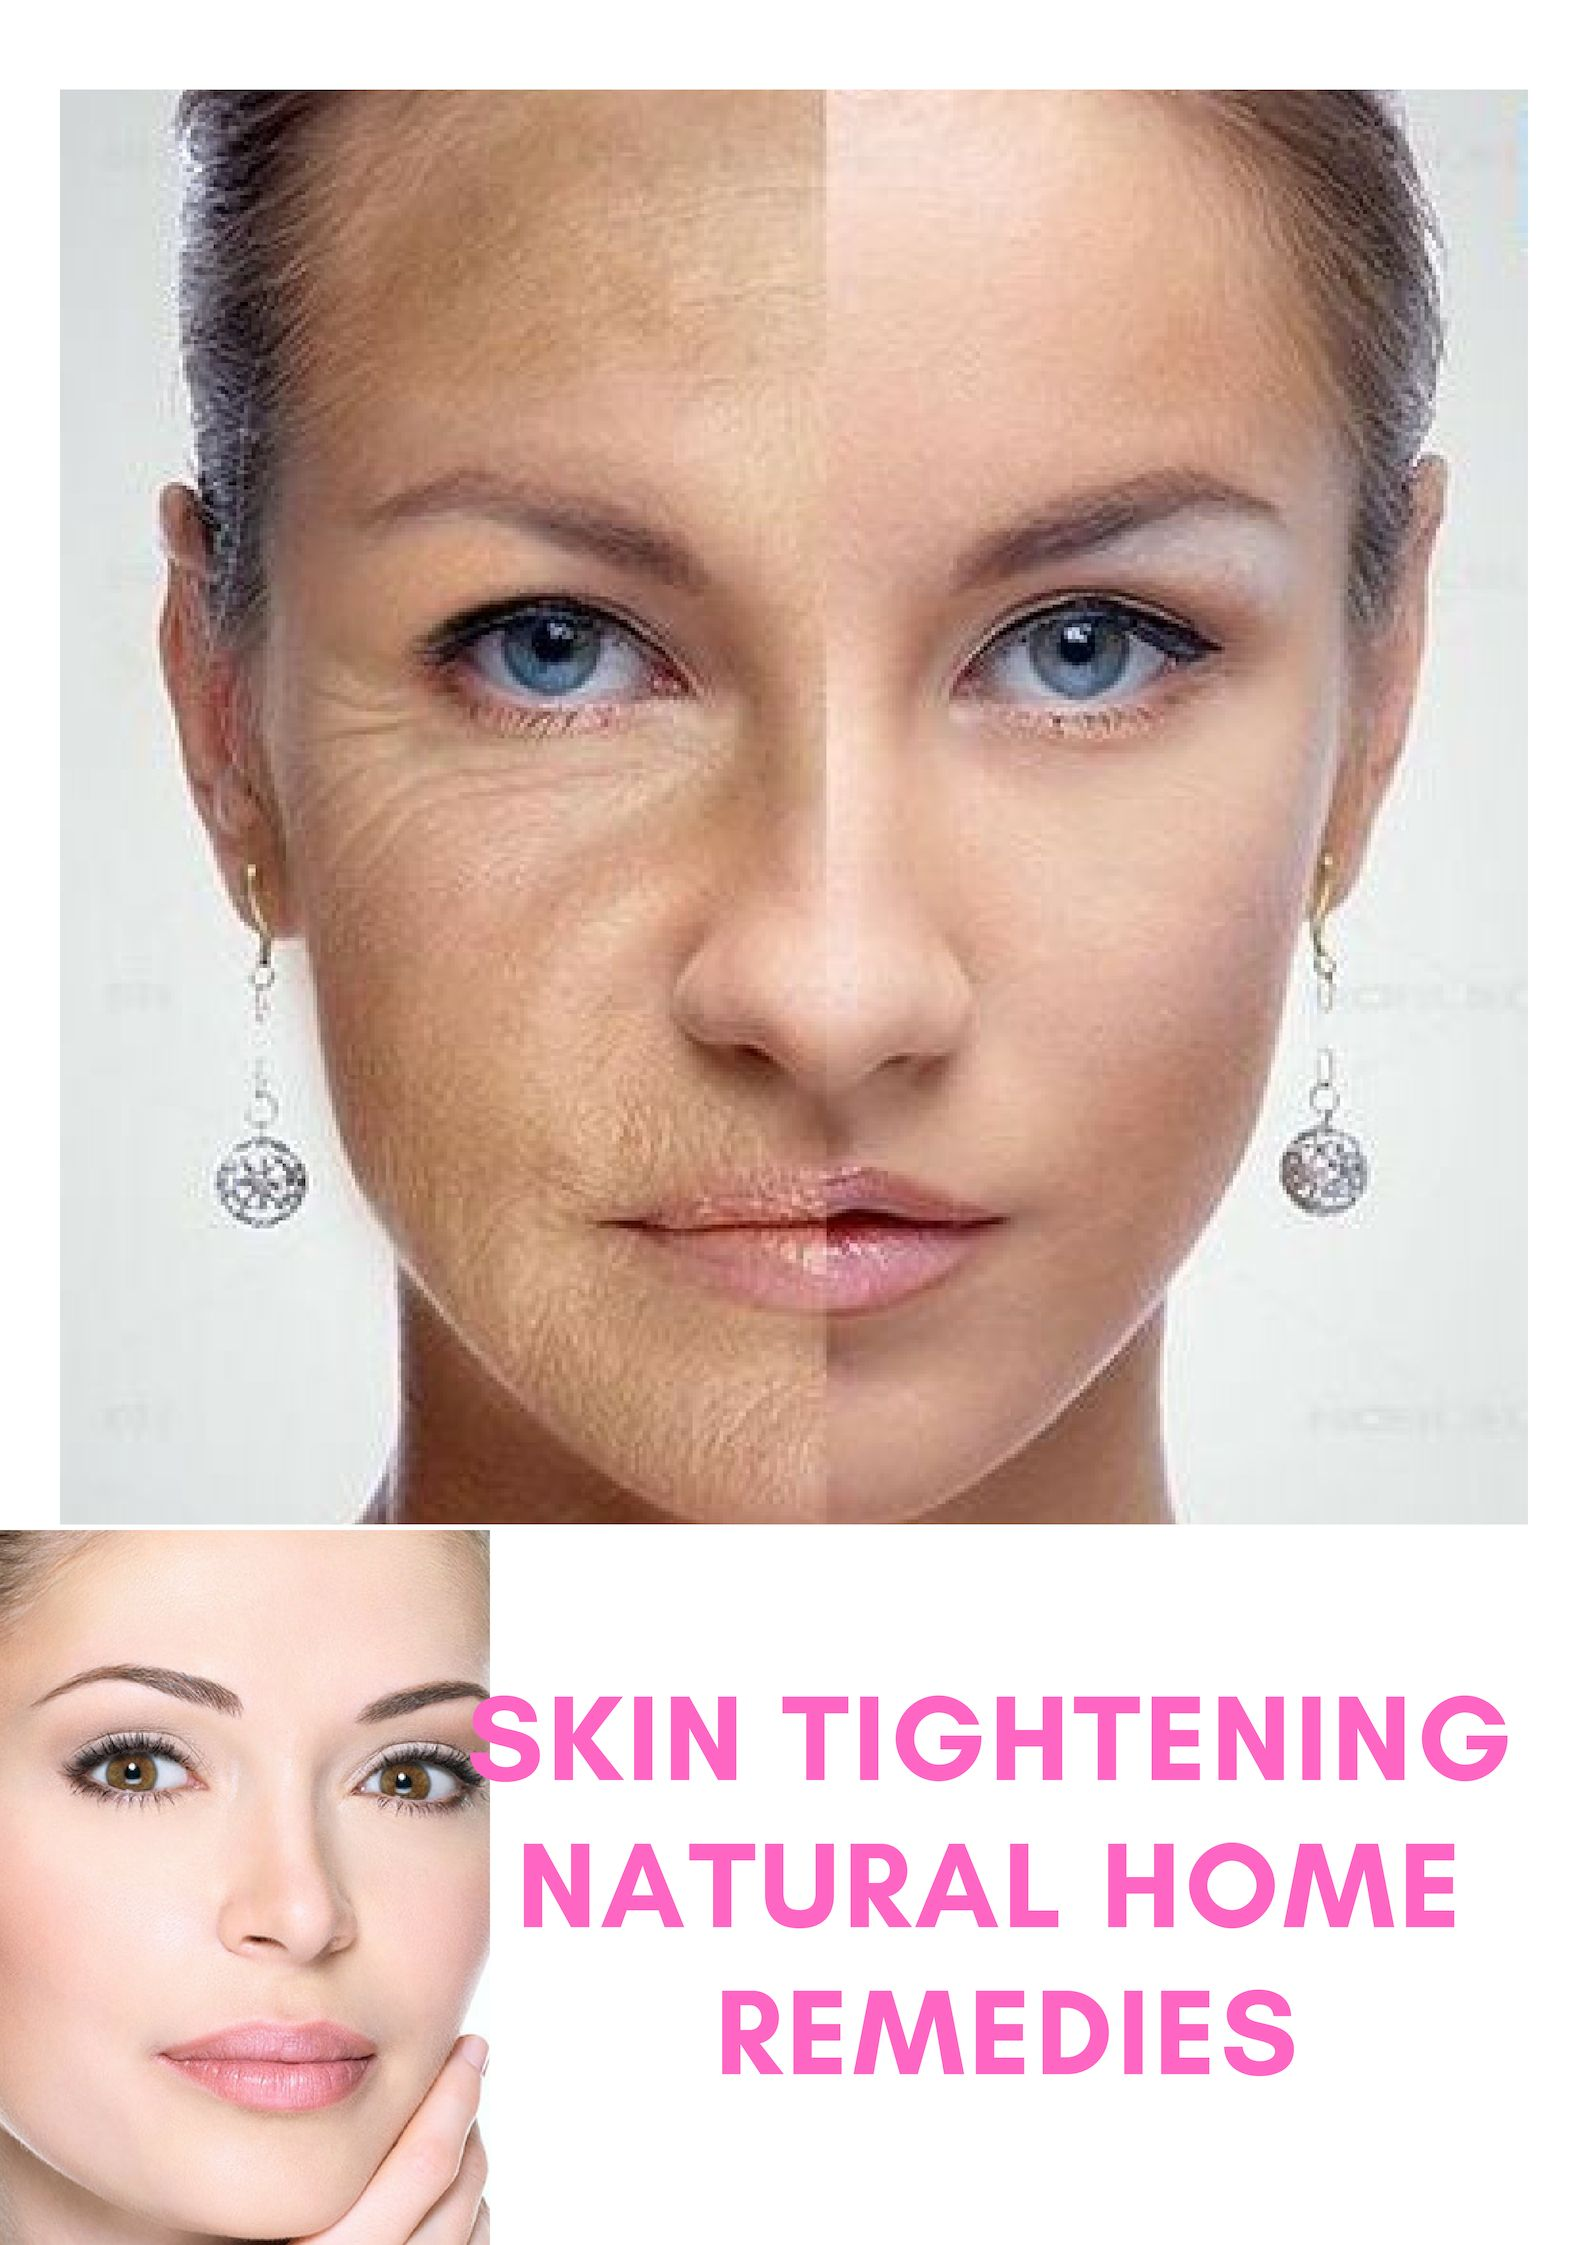 Top 20 Best Skin Tightening Natural Home Remedies For Women Natural Skin Tightening Tighten Neck Skin Skin Tightening